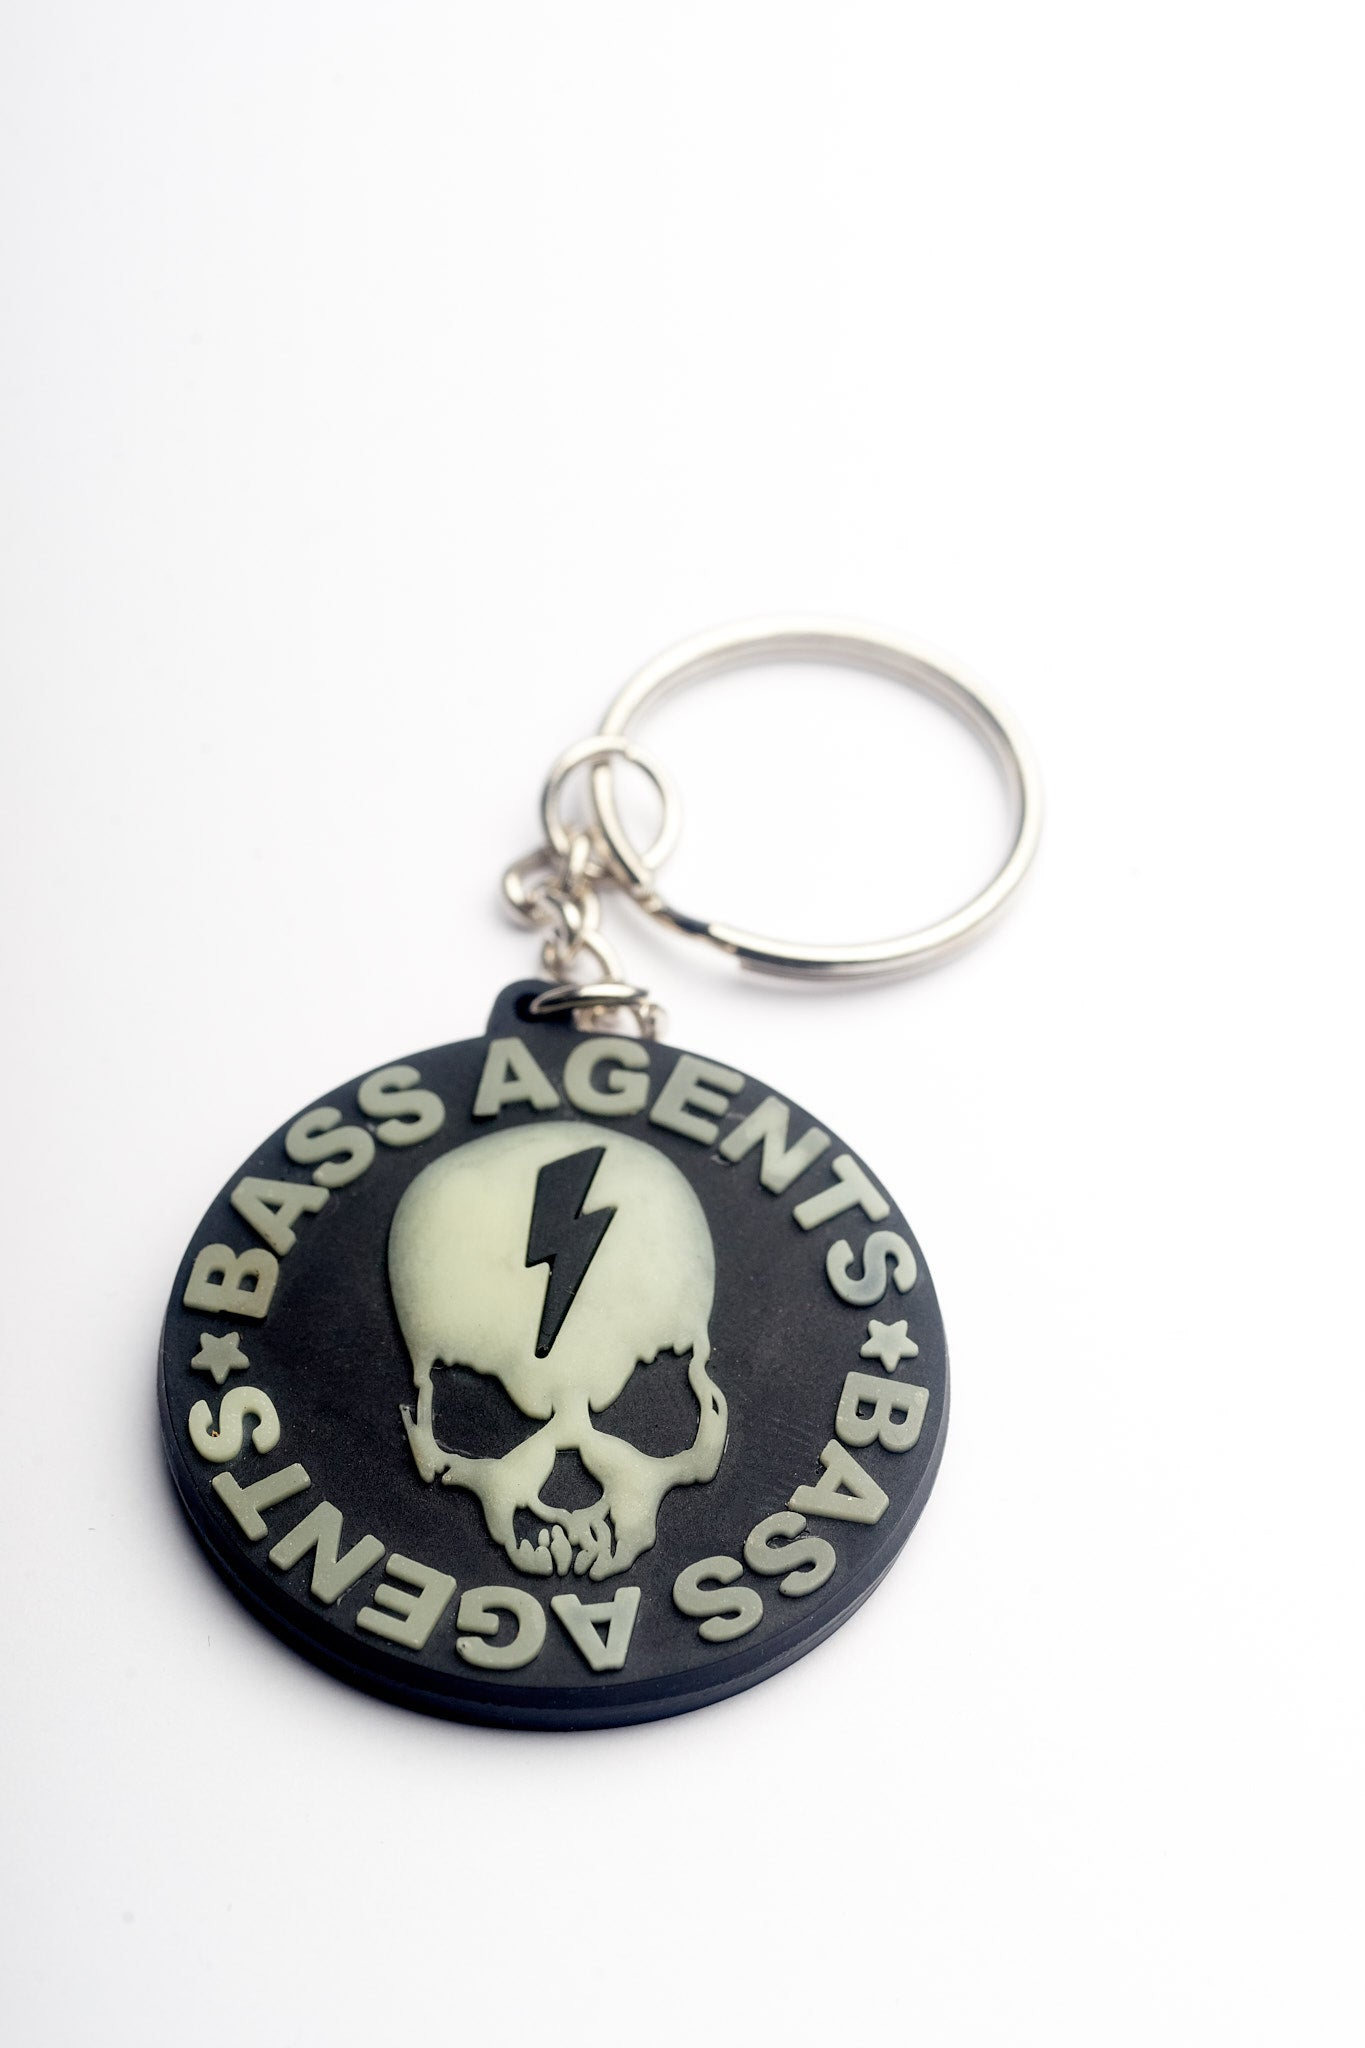 Bass Agents Keyring - SuperFried